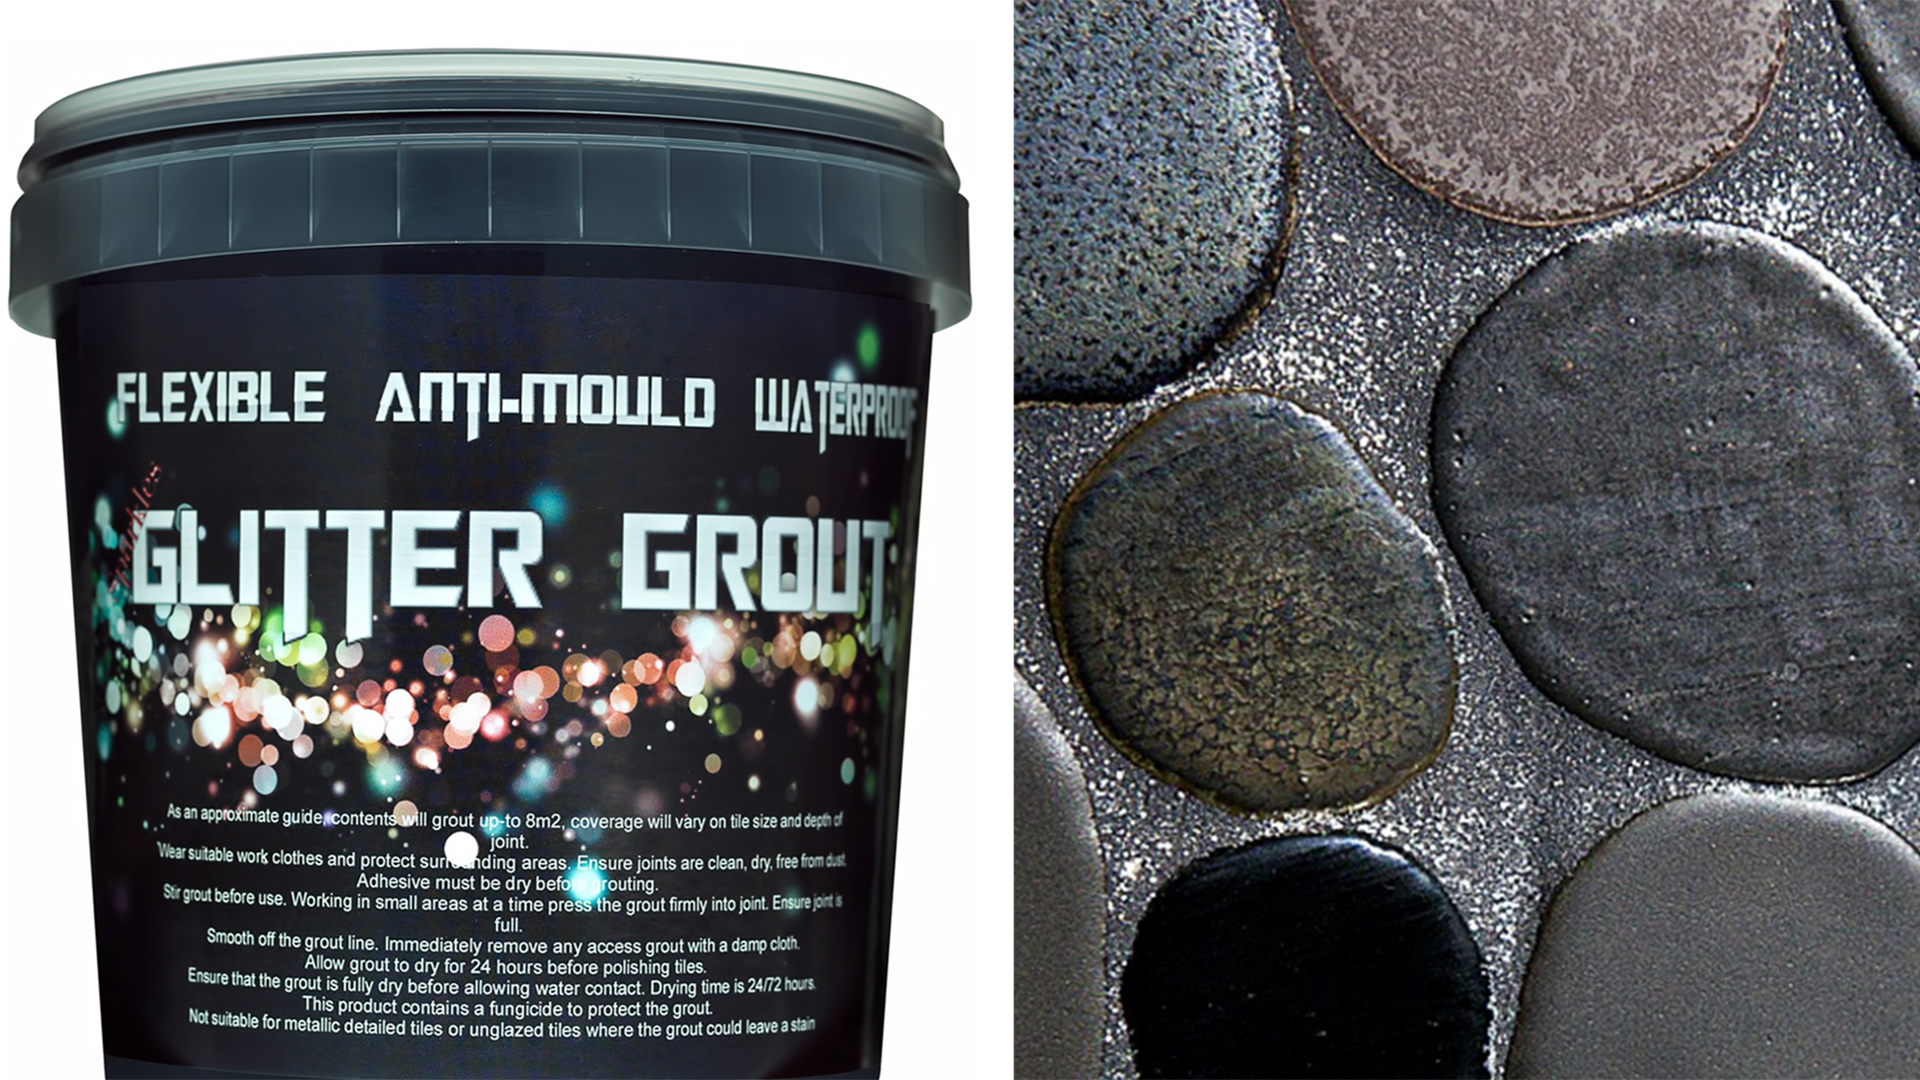 Glitter Grout Home Decor Trend  TODAYcom